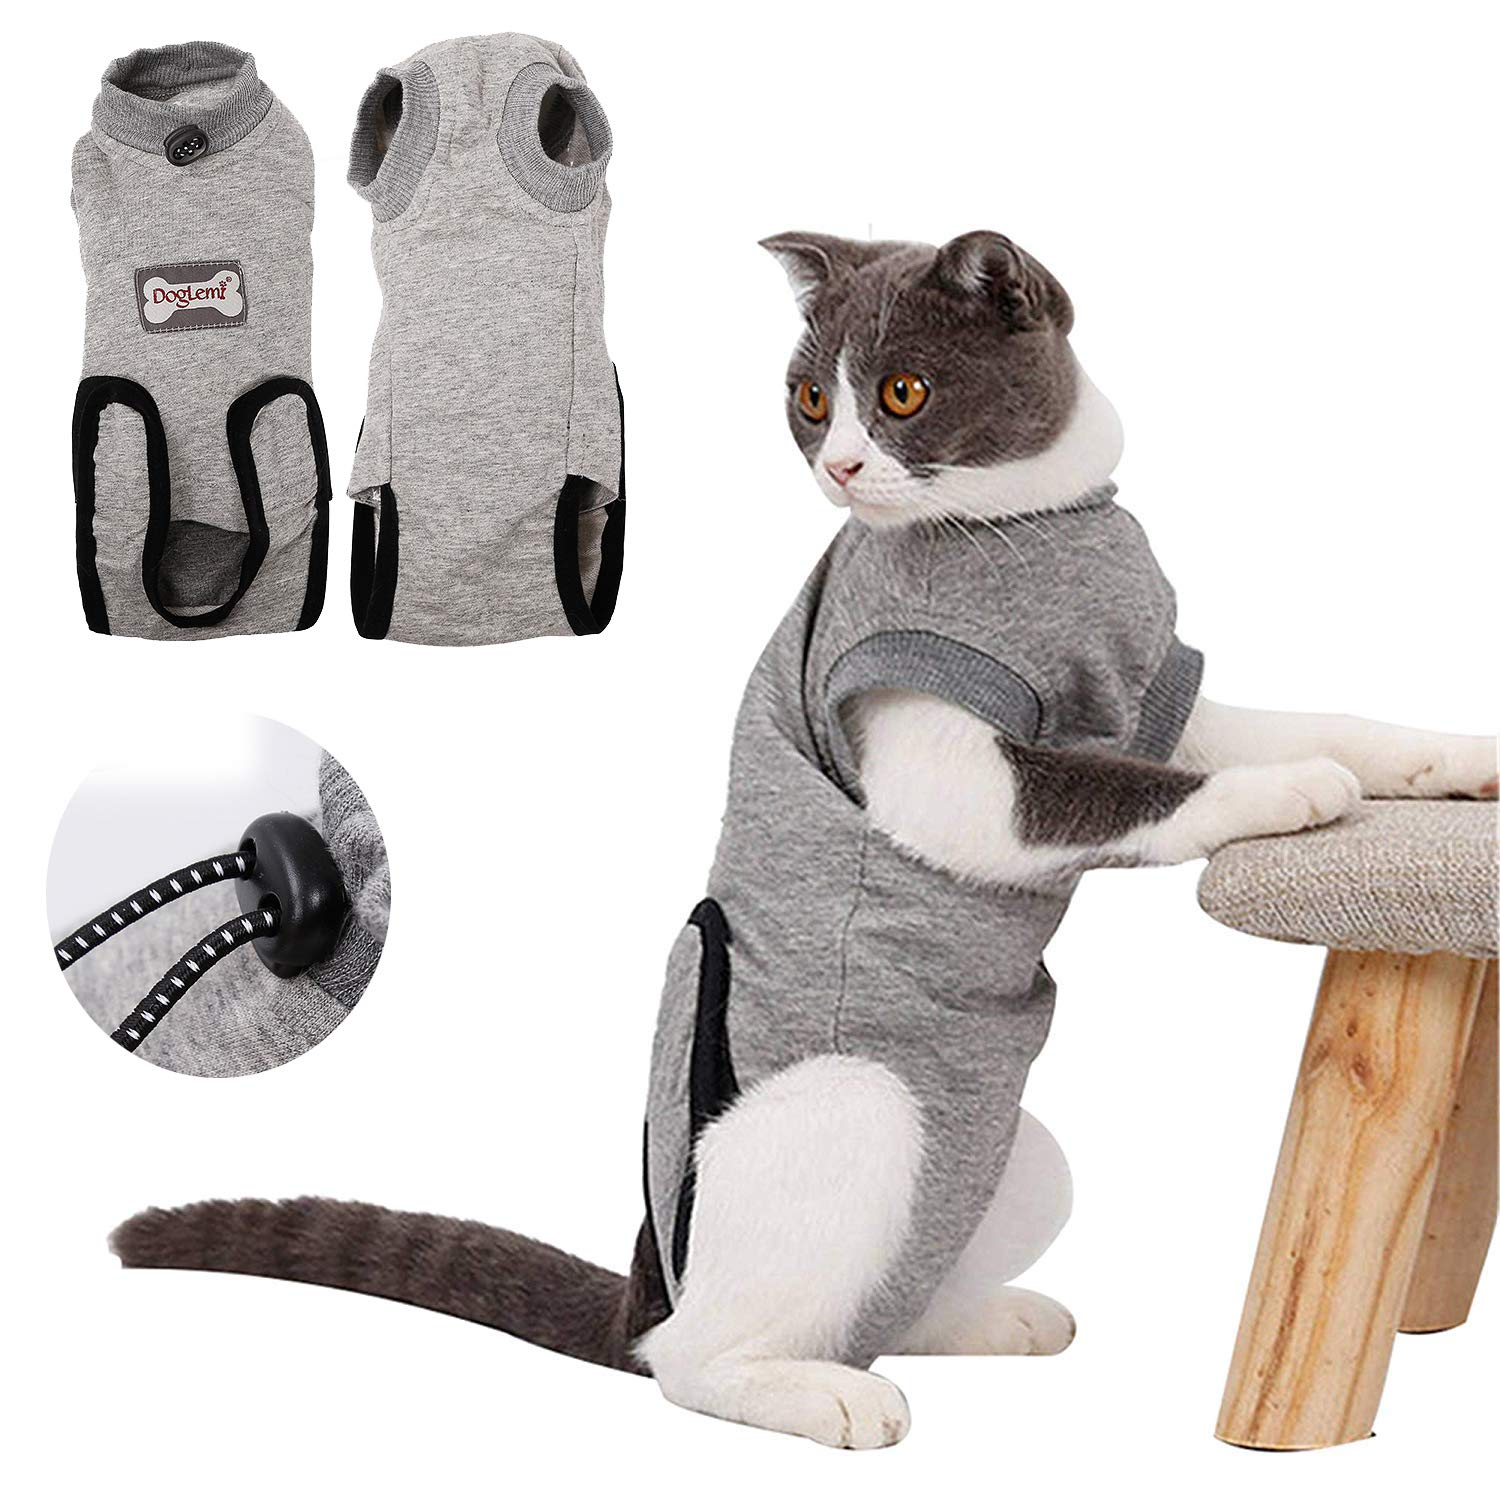 Kismaple Cat Surgery Recovery Suit Cotton Cosy Adjustable Clothes Vest Kitten Costume Suit for Abdominal Wounds, Skin Diseases, Surgical, Anti-Harassment (S)